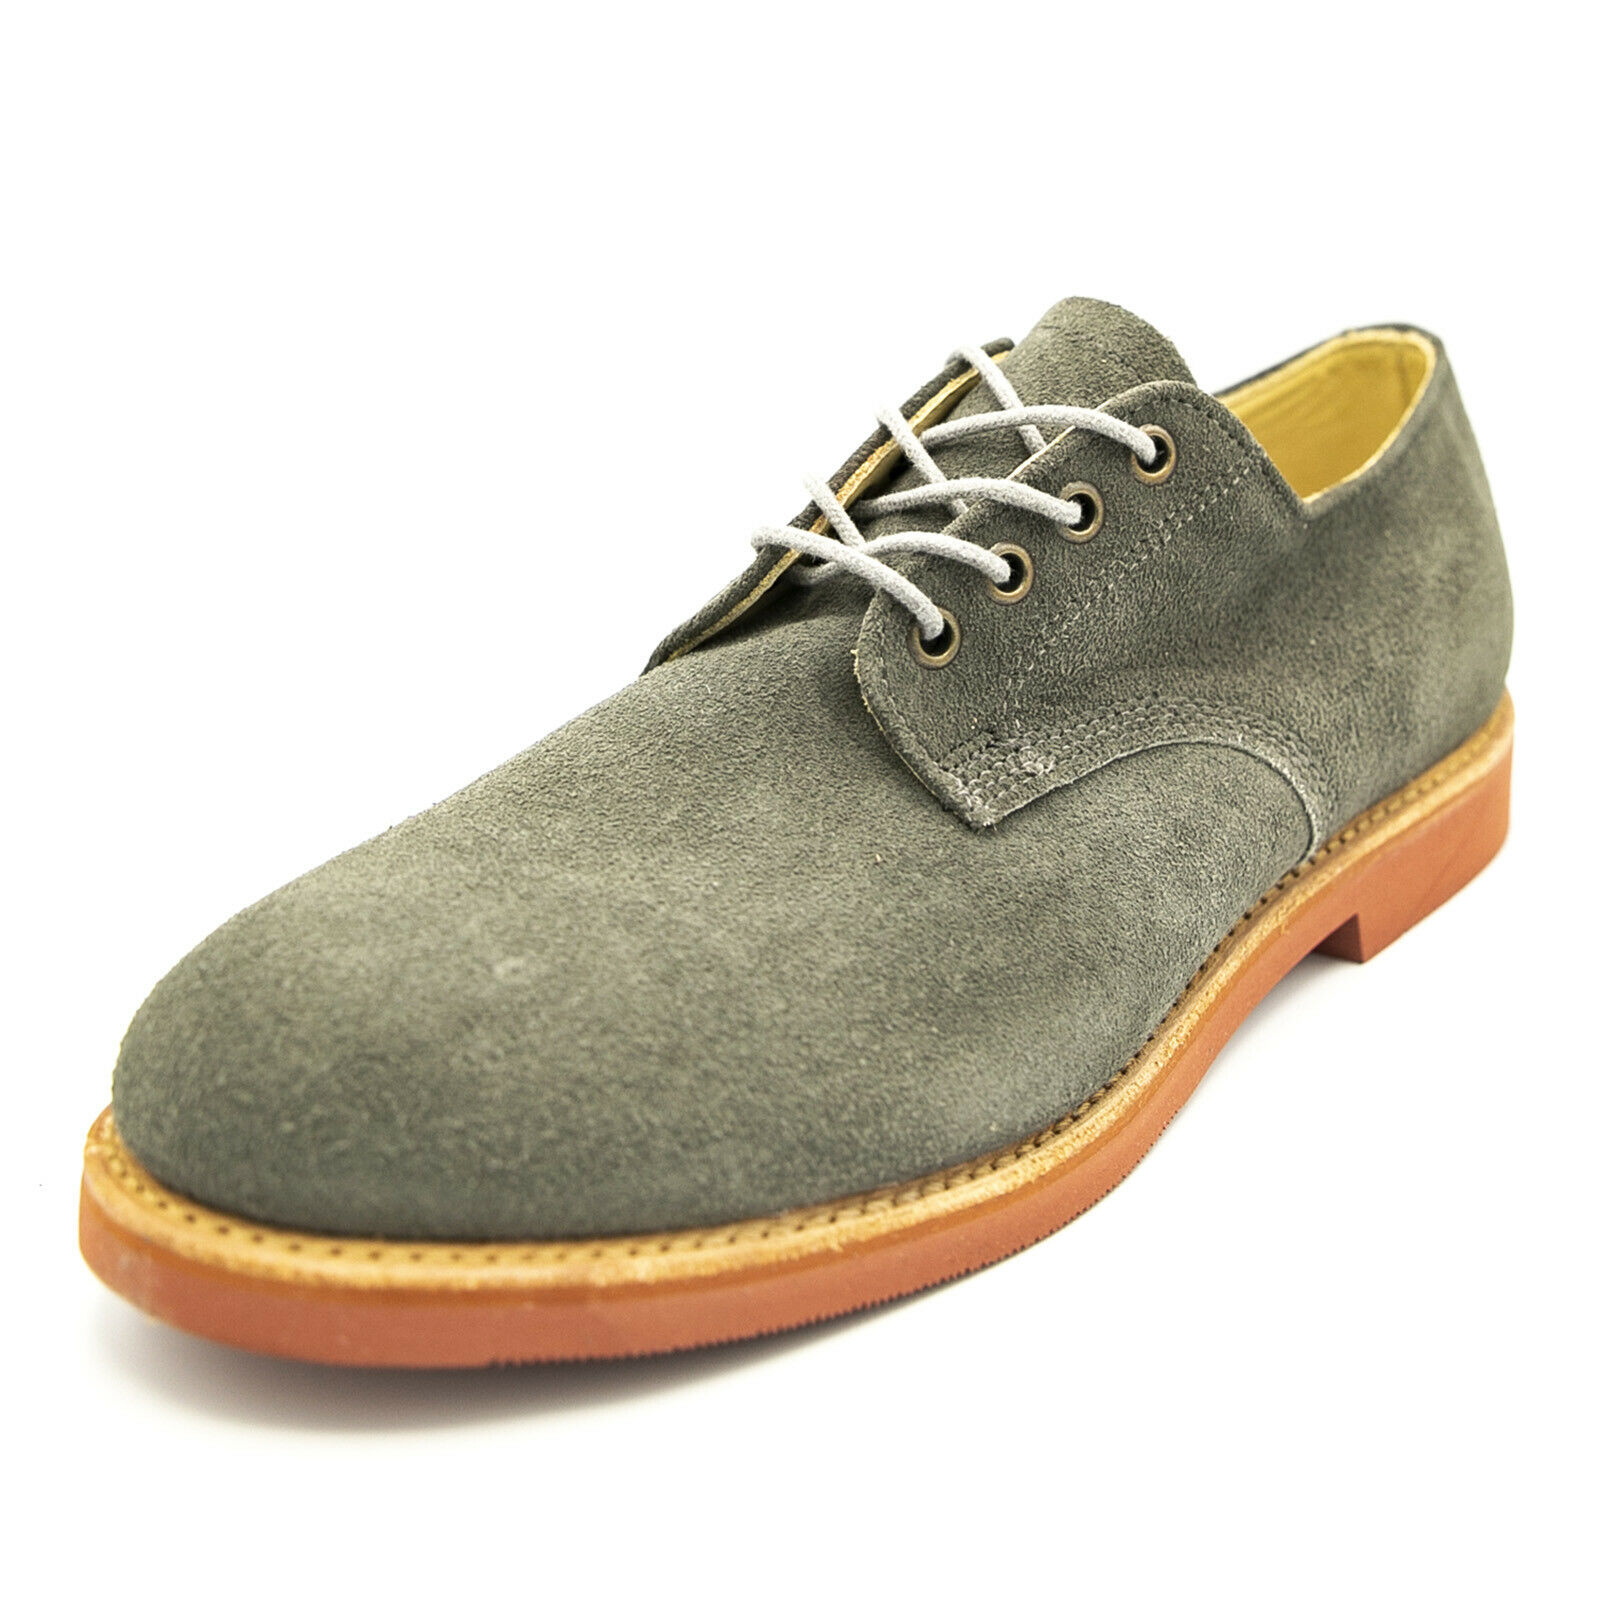 Walk-Over Derby - gris - Stbagueate hommes gris